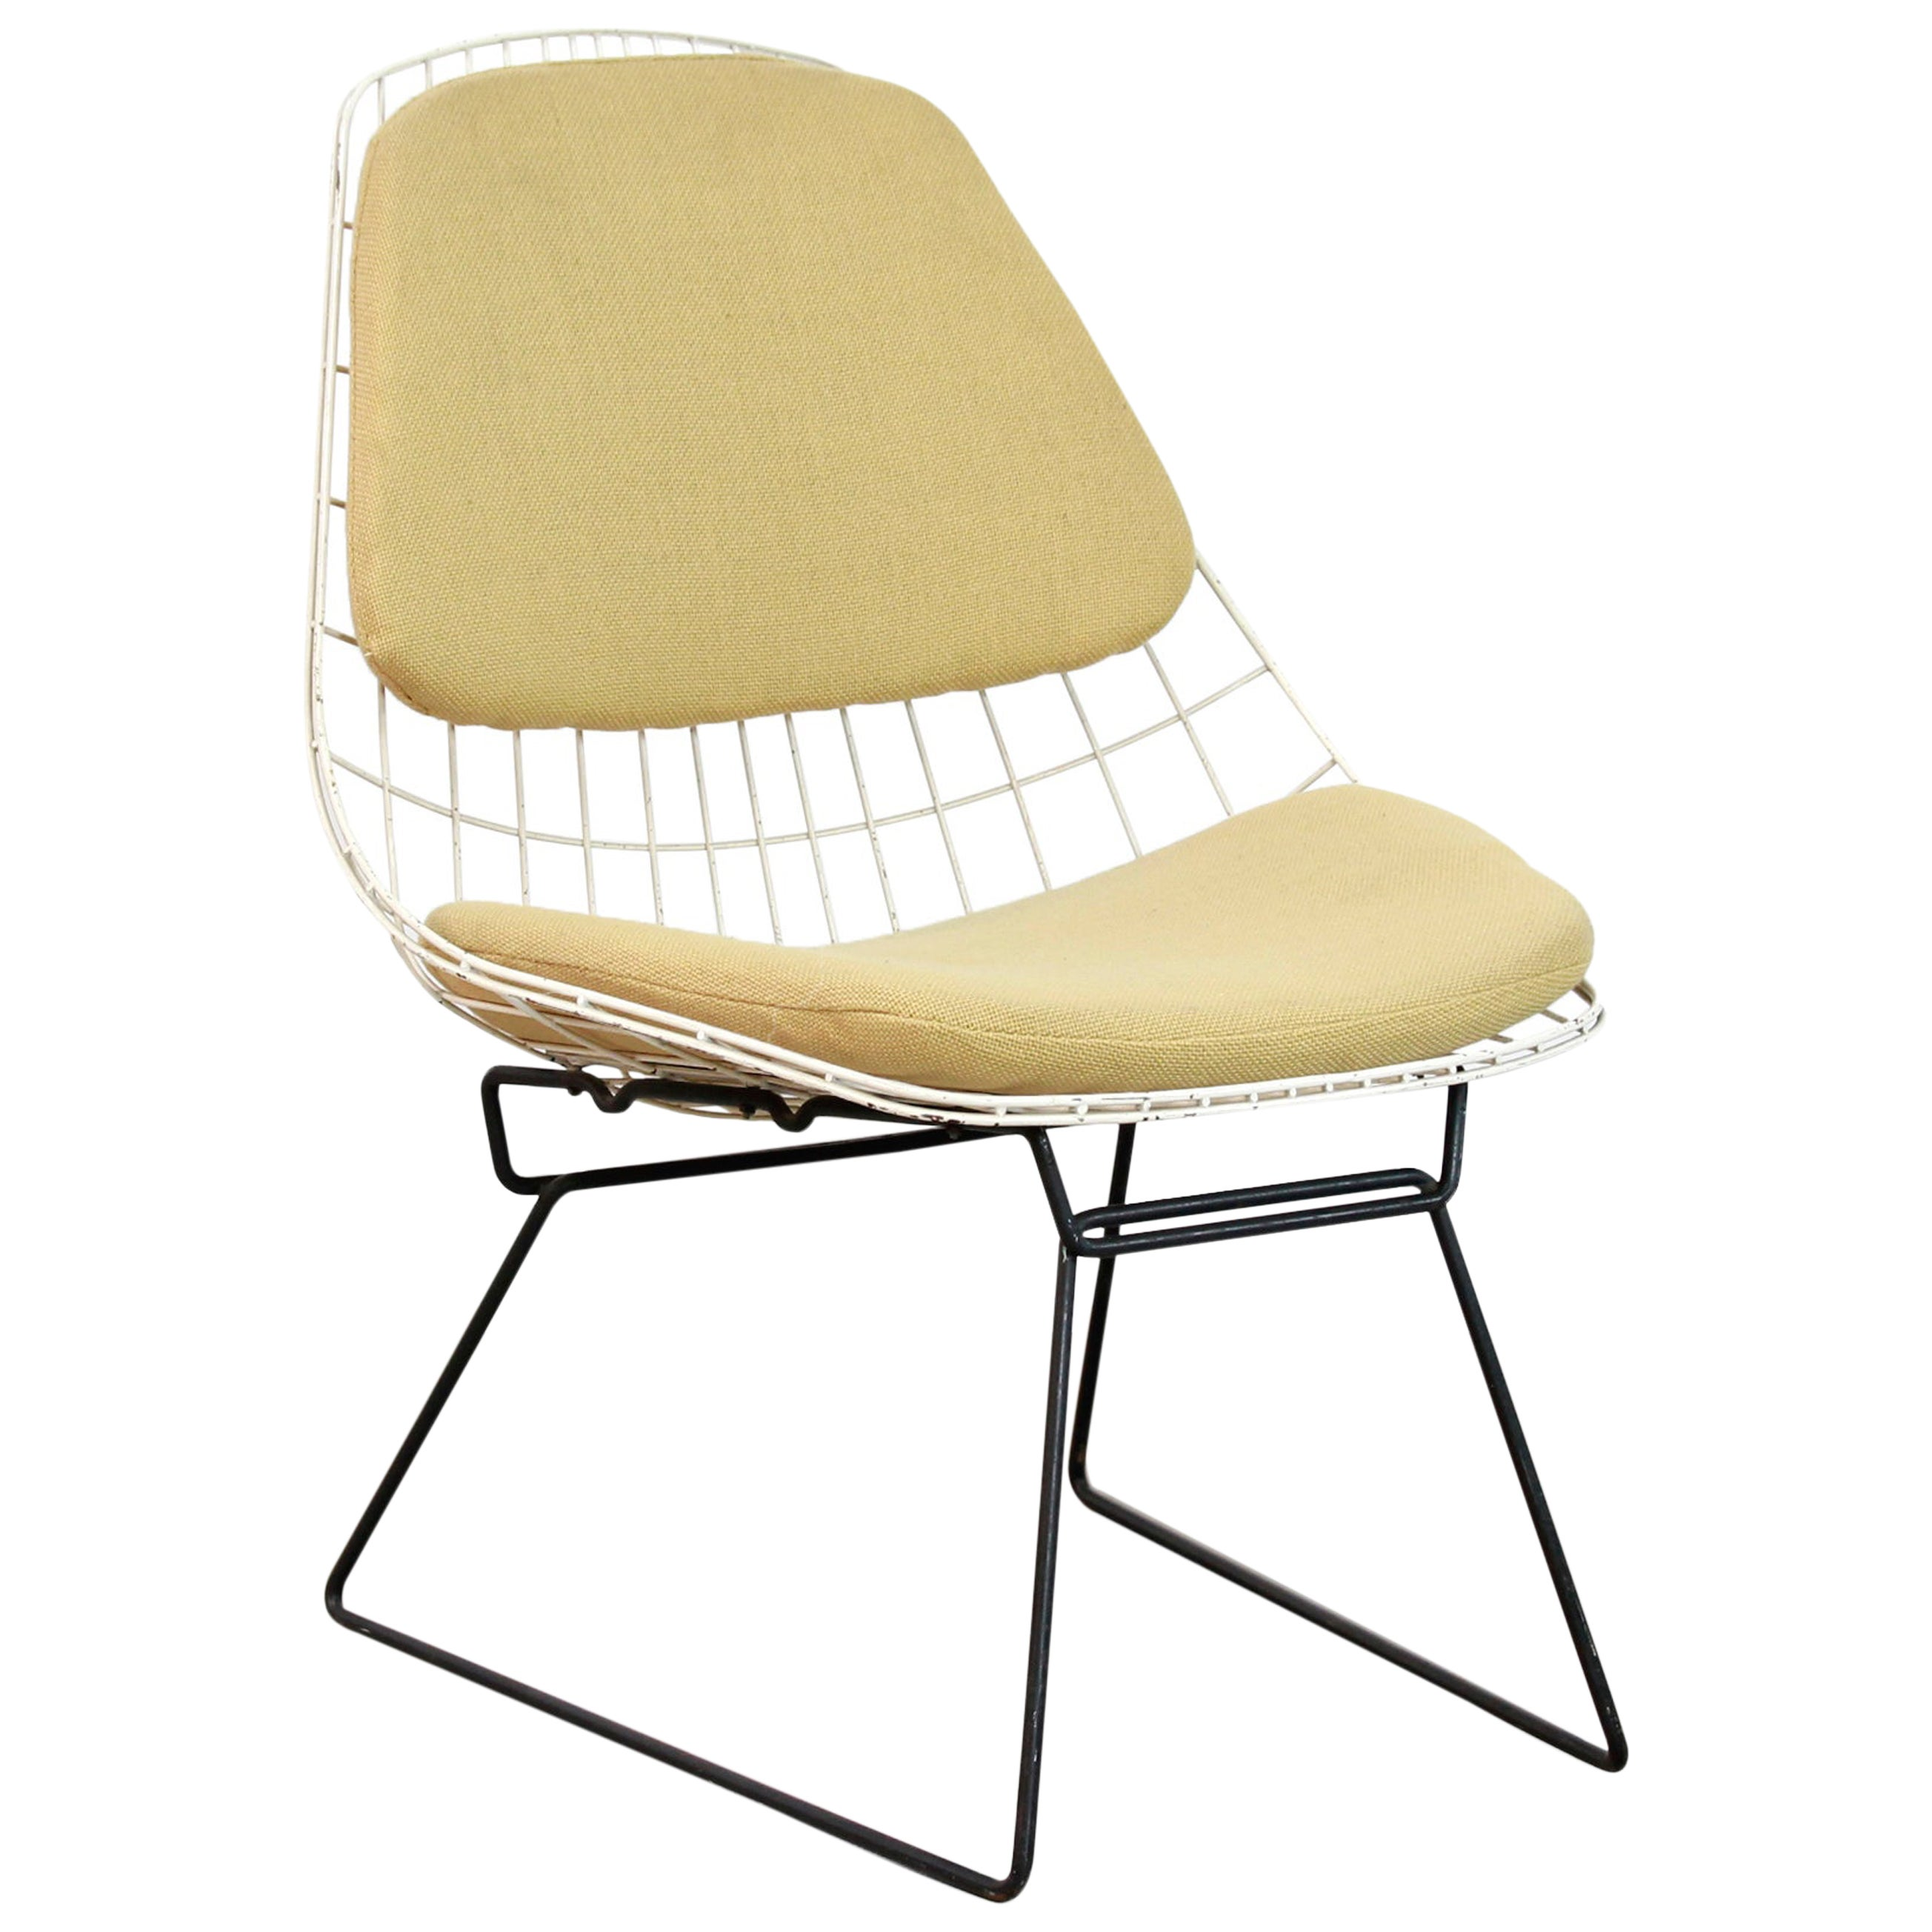 Dutch Industrial Pastoe FM05 Wire Chair by Cees Braakman, 1950s